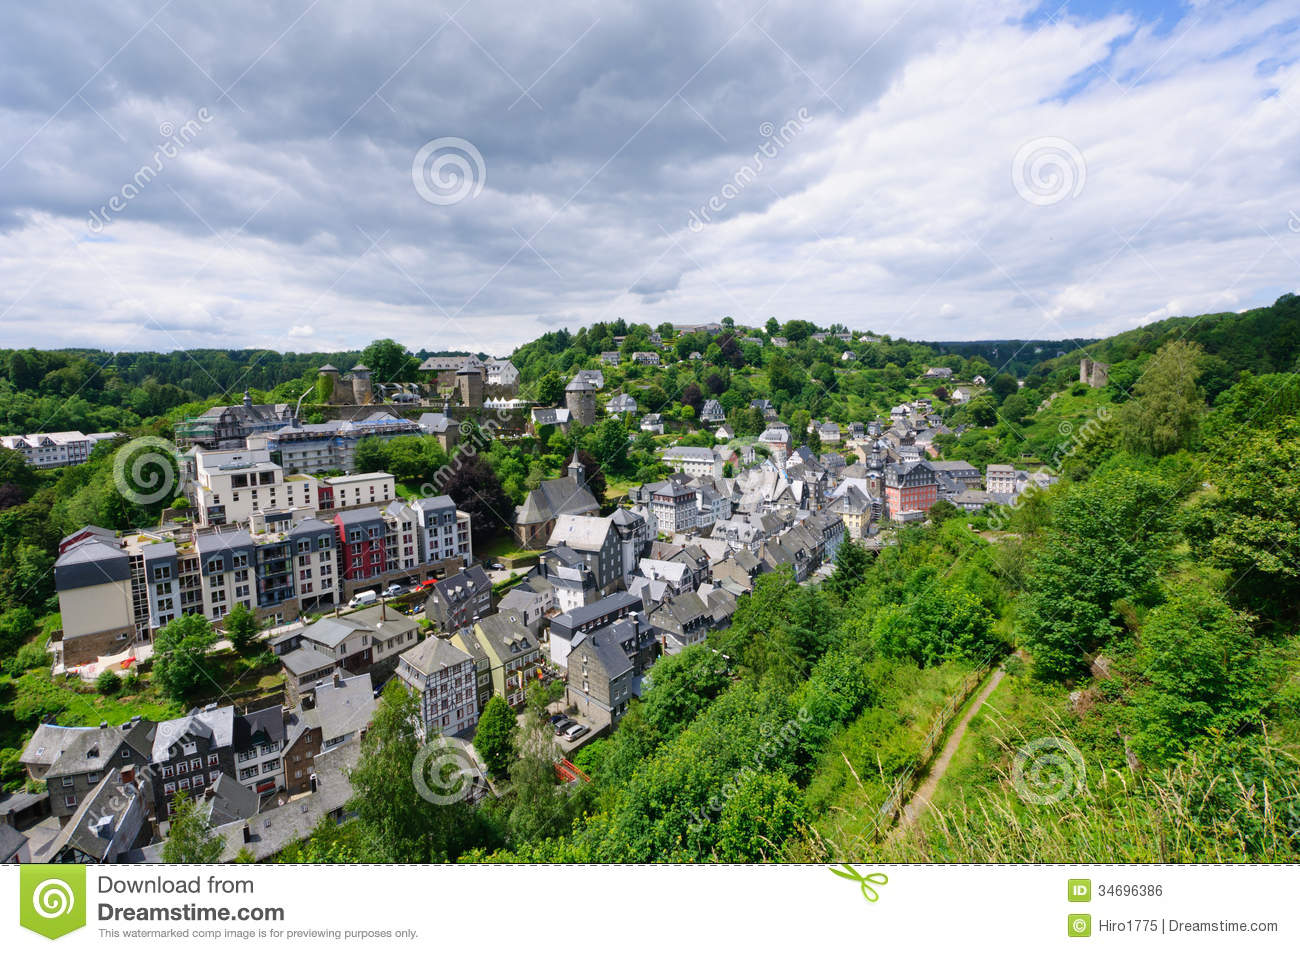 Monschau is a small resort town in the Eifel region. The historic town ...